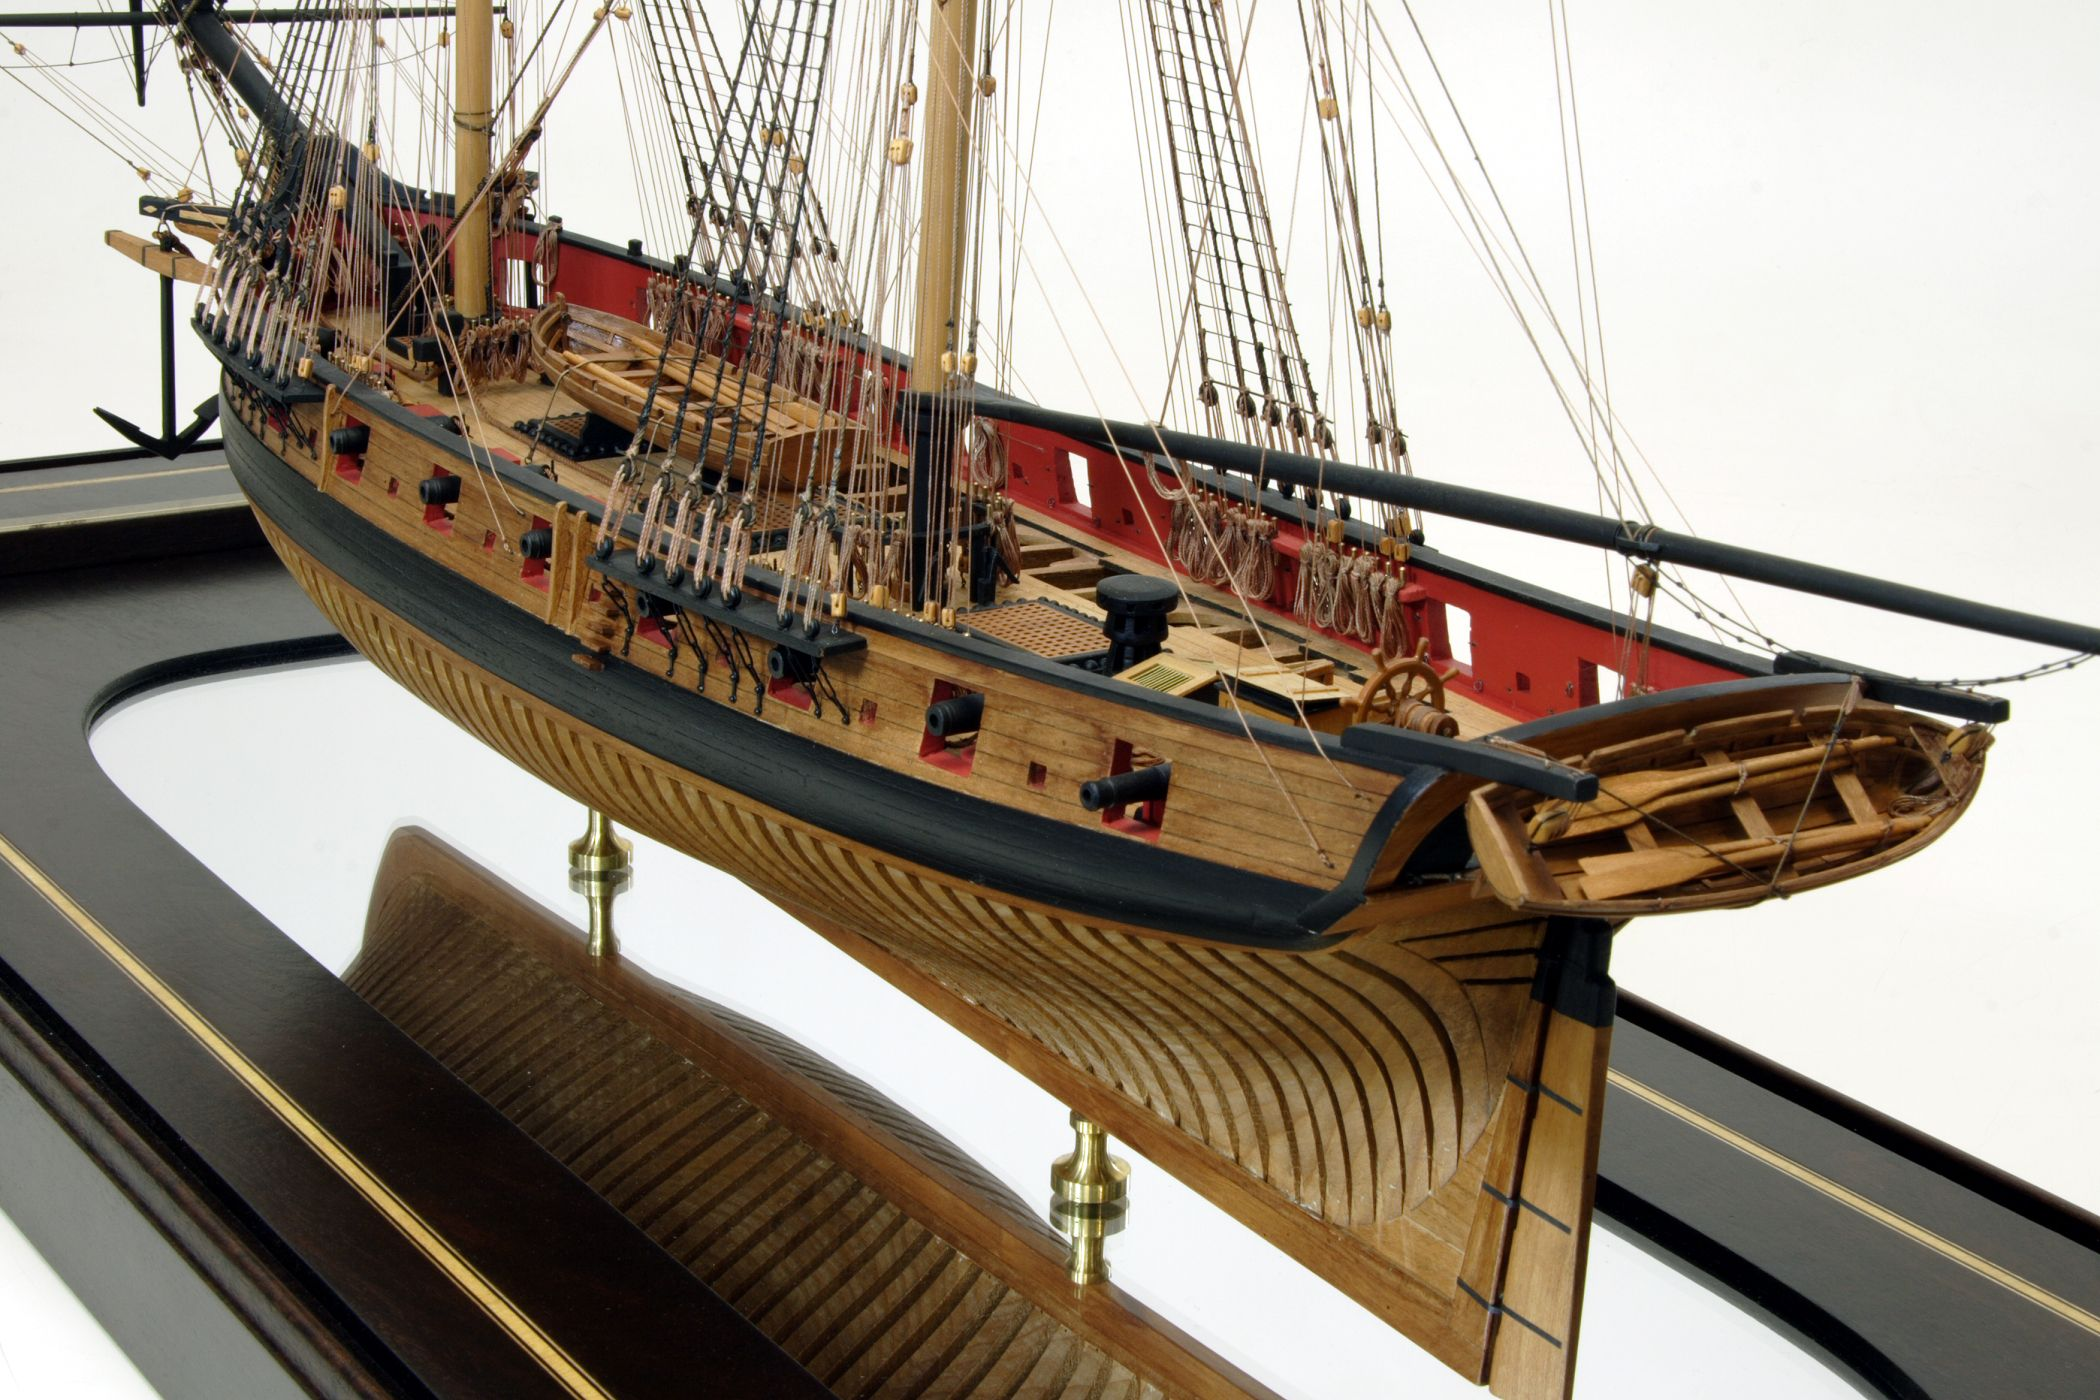 Syren By Raymond Langdon Designed Benjamin Hutton Jr And Built Pirate Ship Diagram Piratediary Natl At Philadelphia The Brig Was Launched In 1803 Went Into Commission